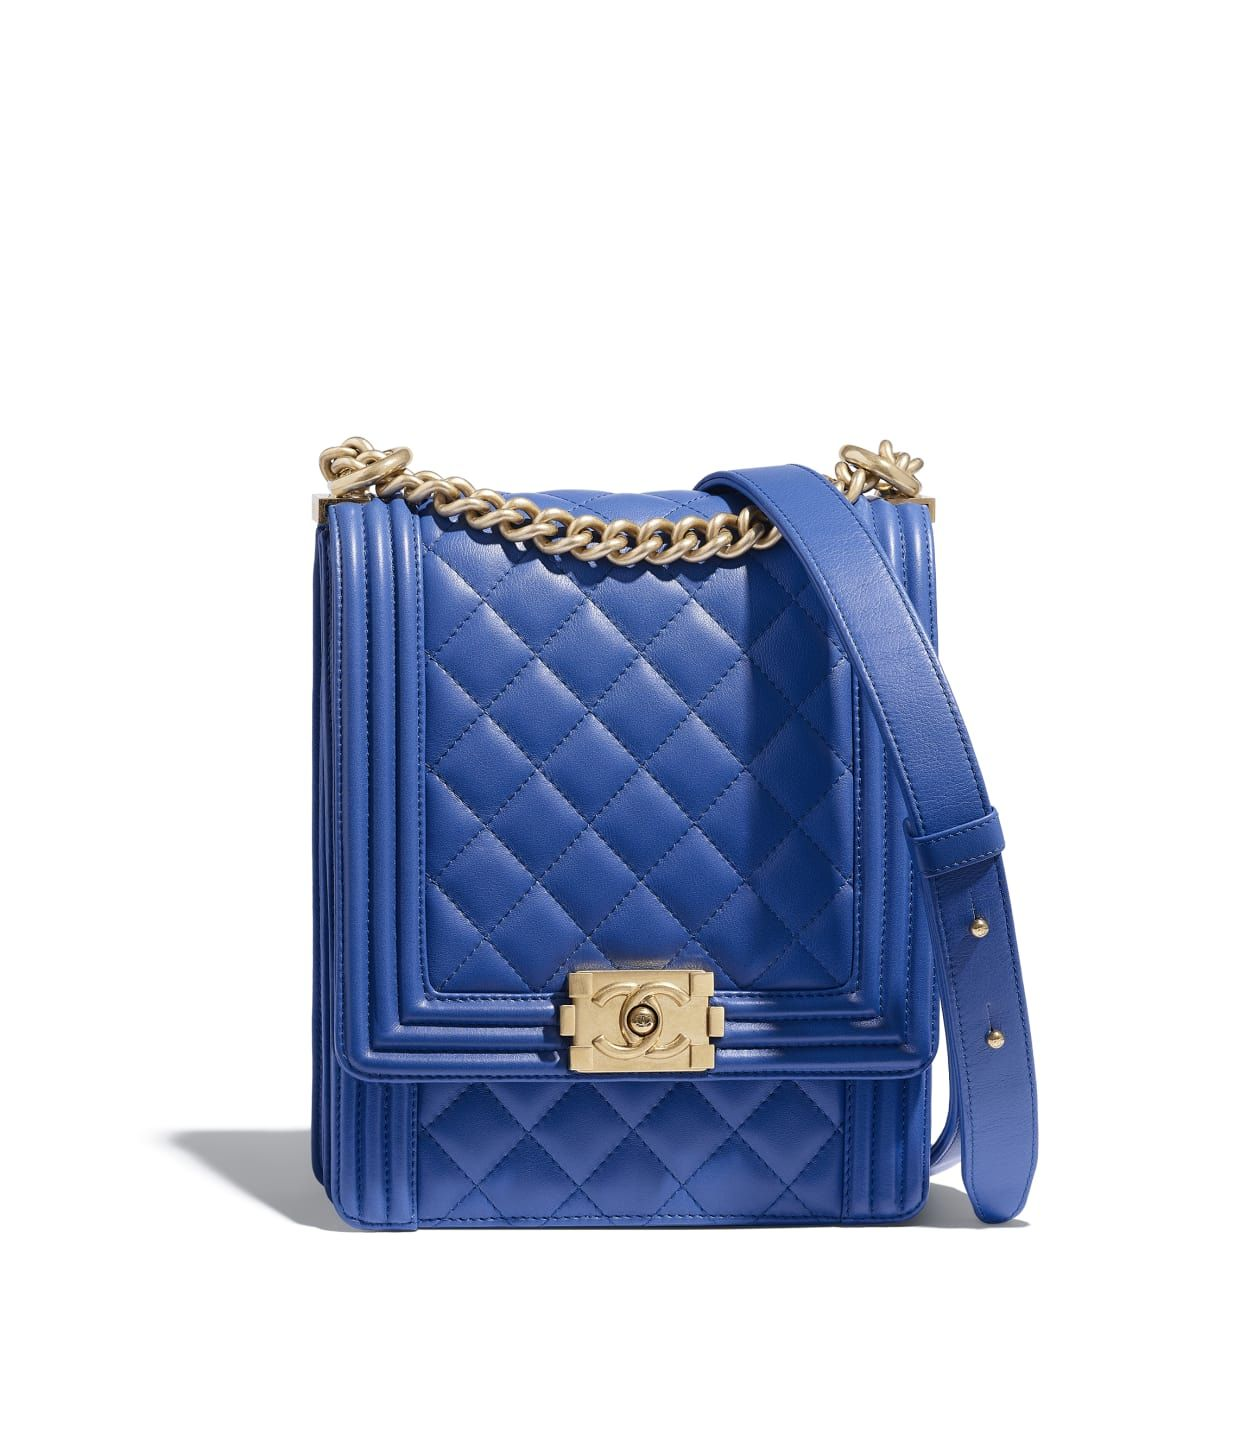 f1b7faa2f8bbc Calfskin   Gold-Tone Metal Blue BOY CHANEL Handbag in 2019